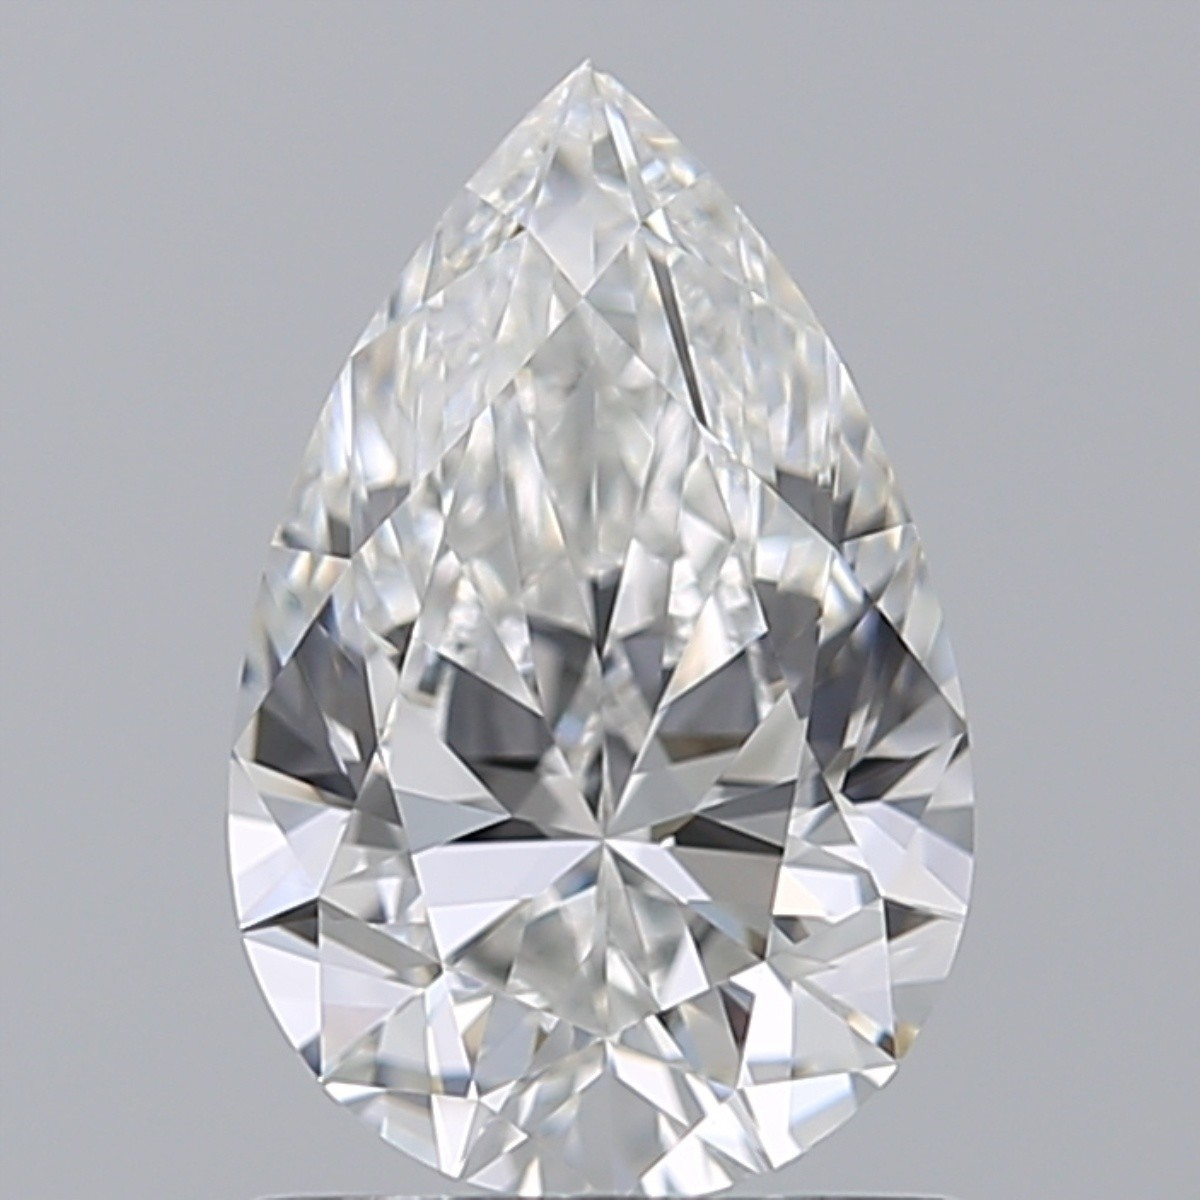 1.12 Carat Pear Diamond (F/IF)